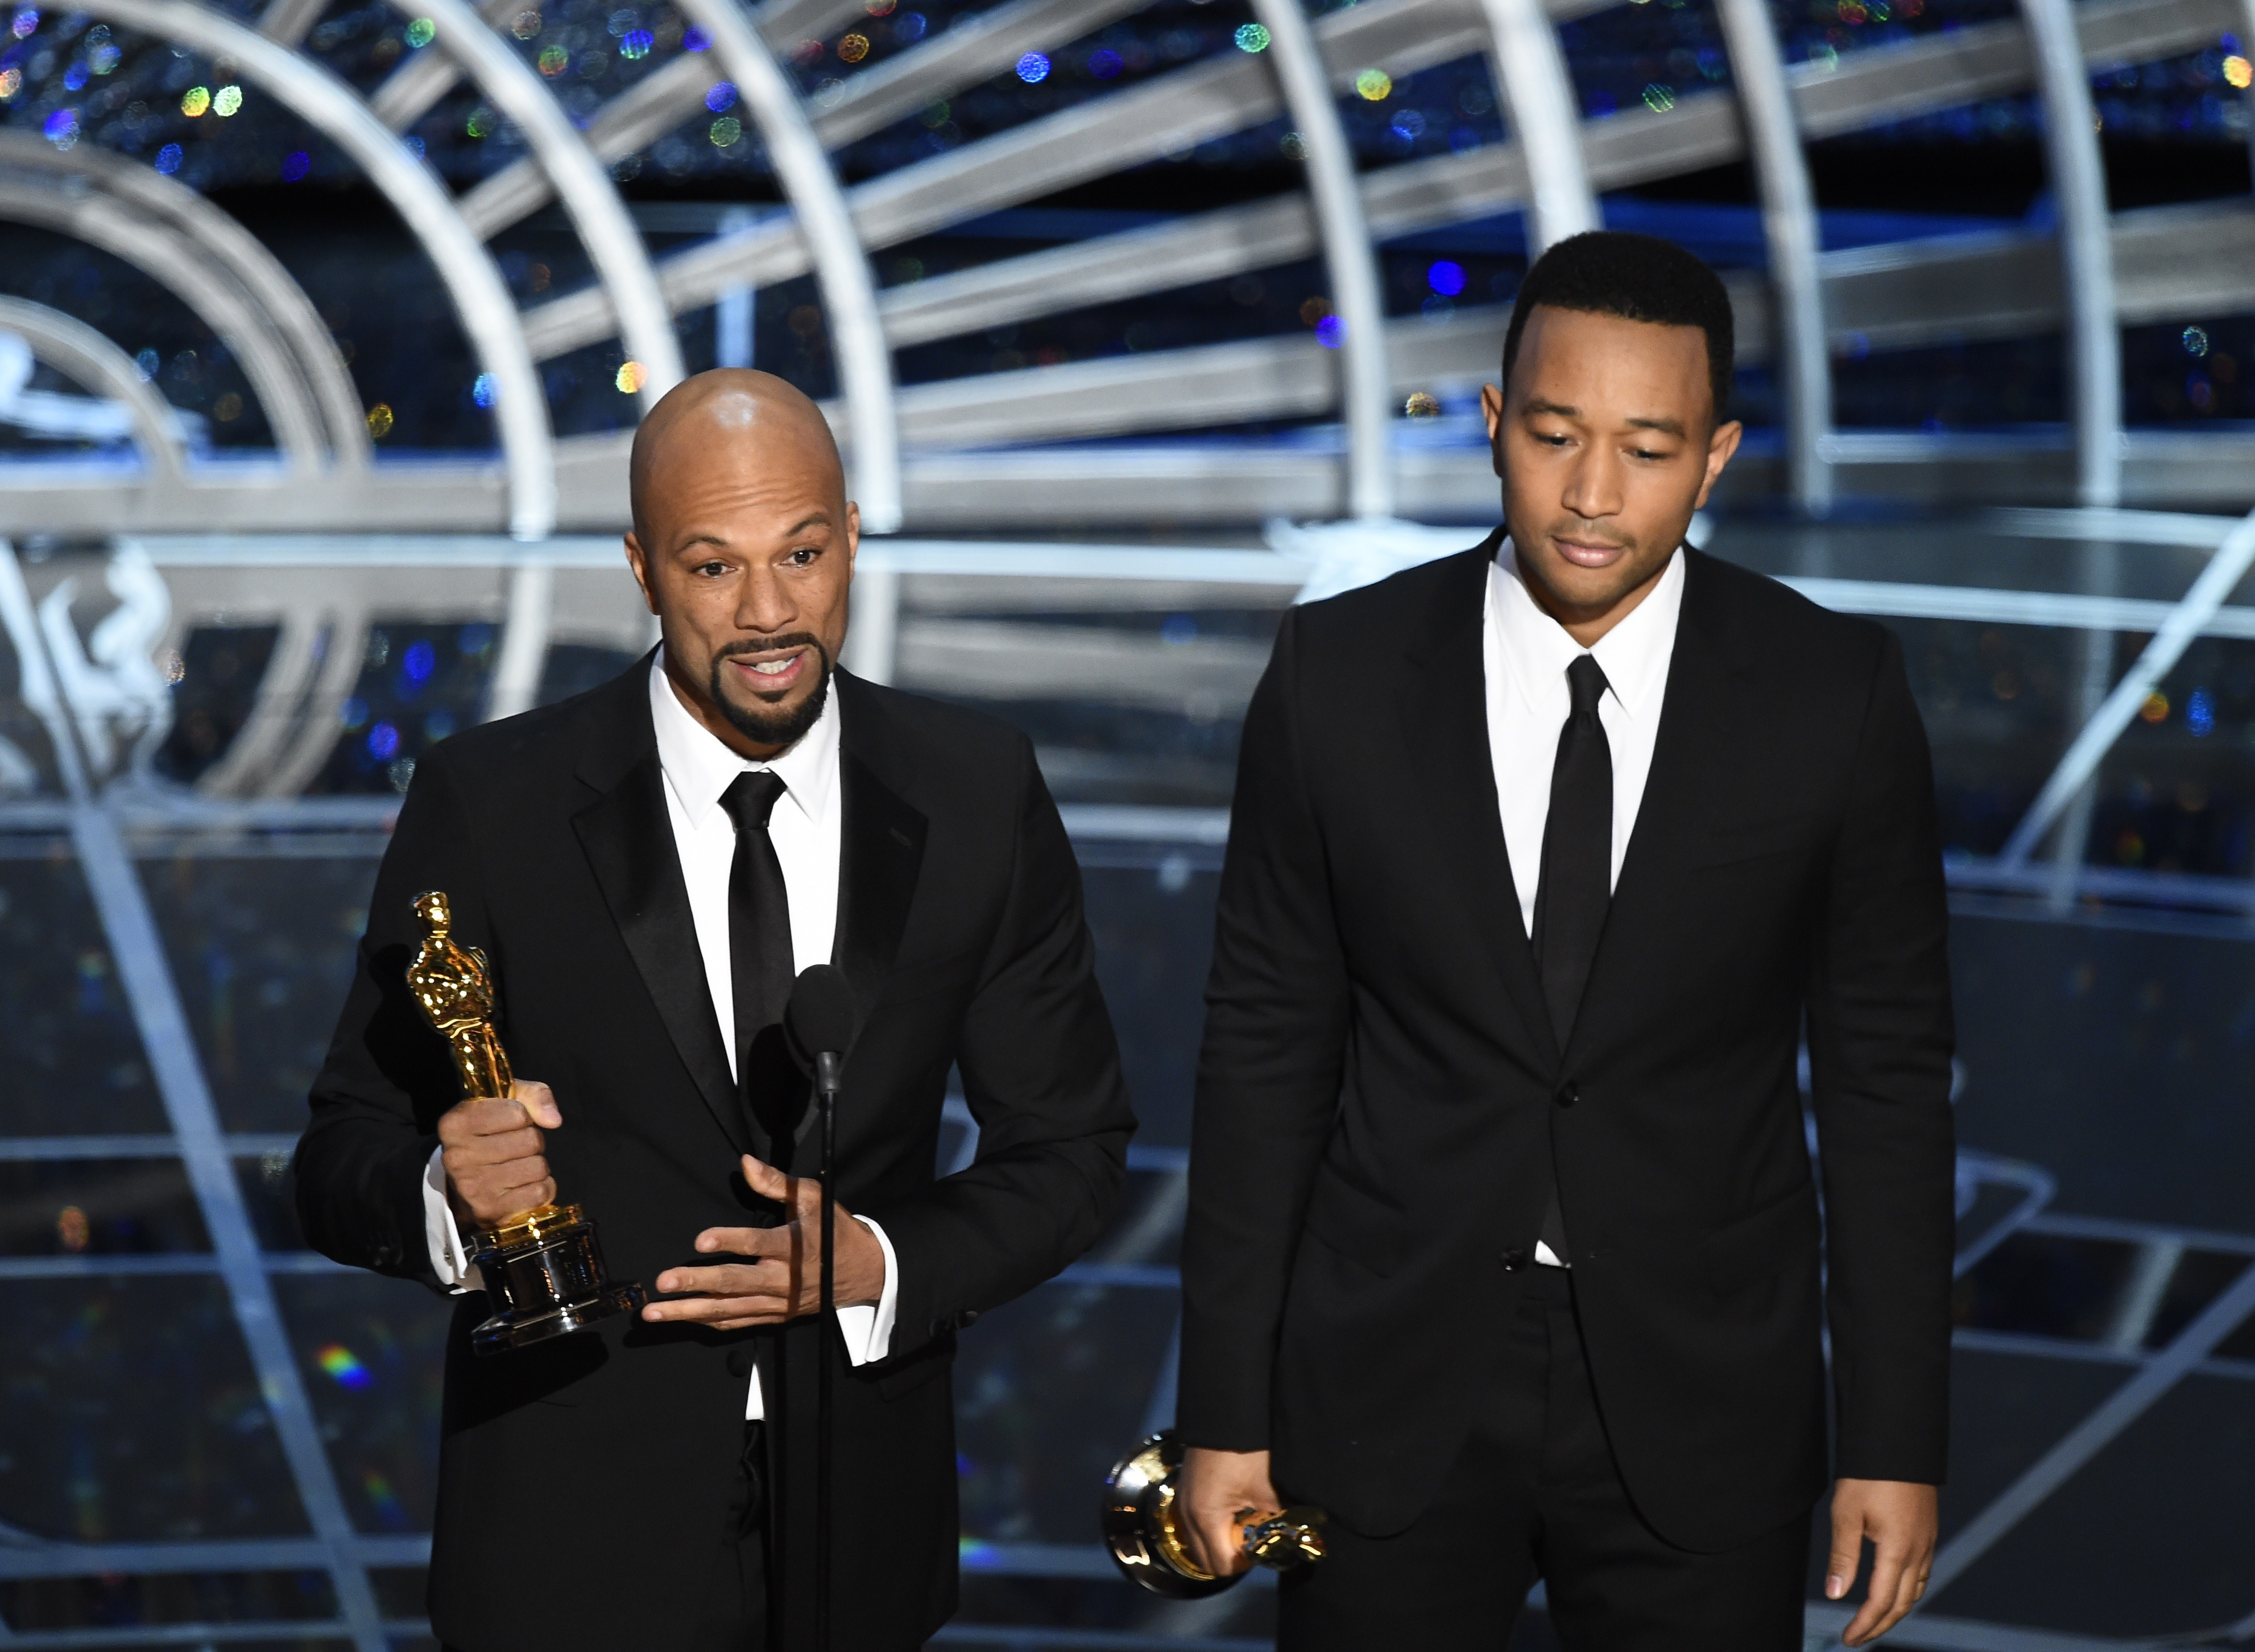 John Legend and Rapper Common Have History of Activism